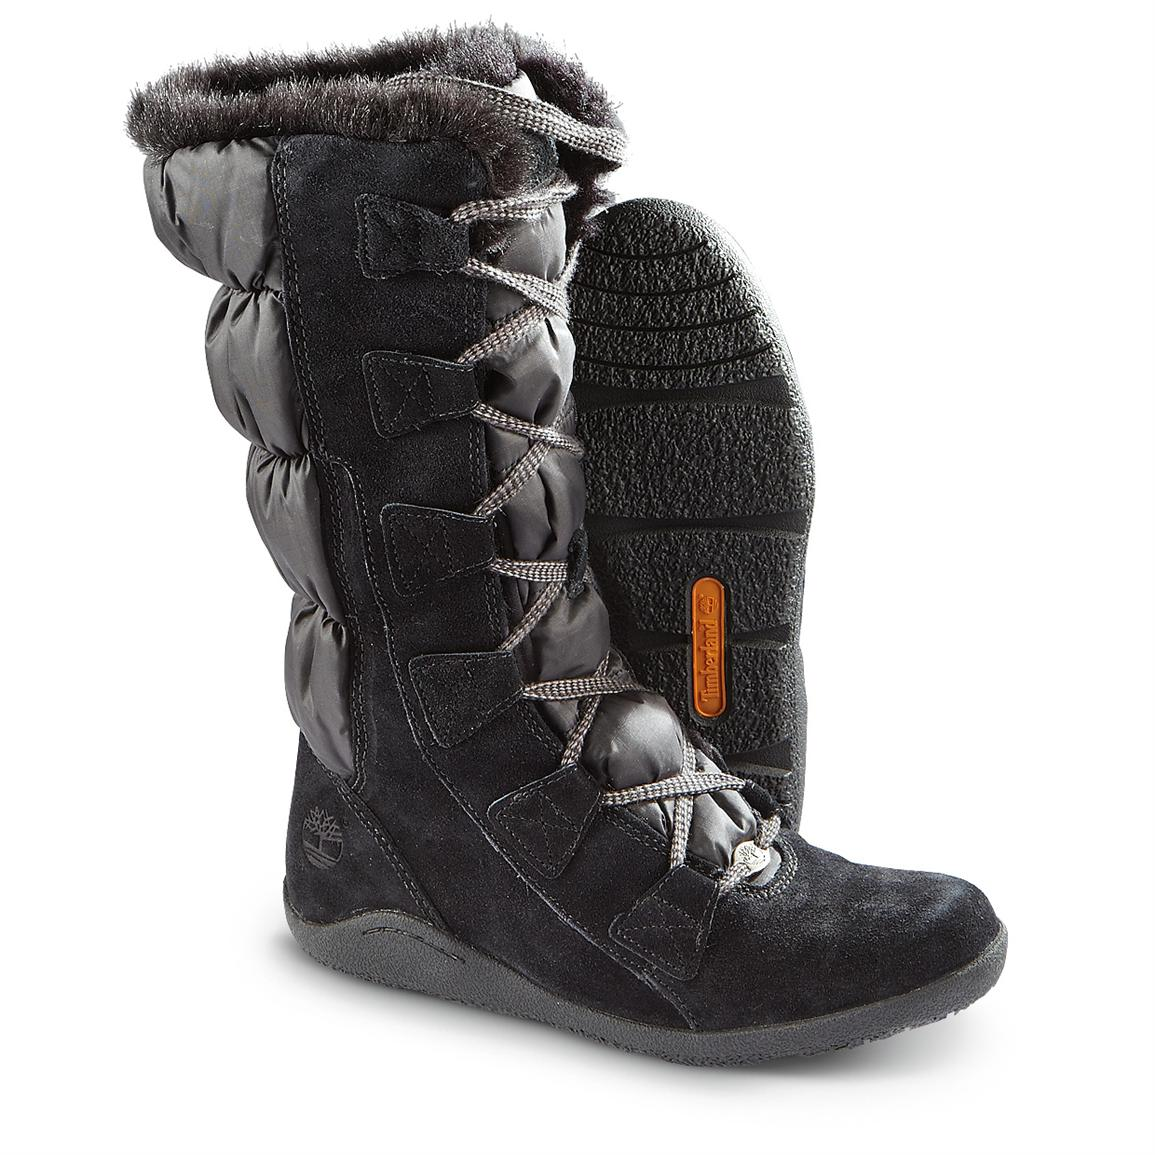 Womens Black Snow Boots Wc8RCrh1